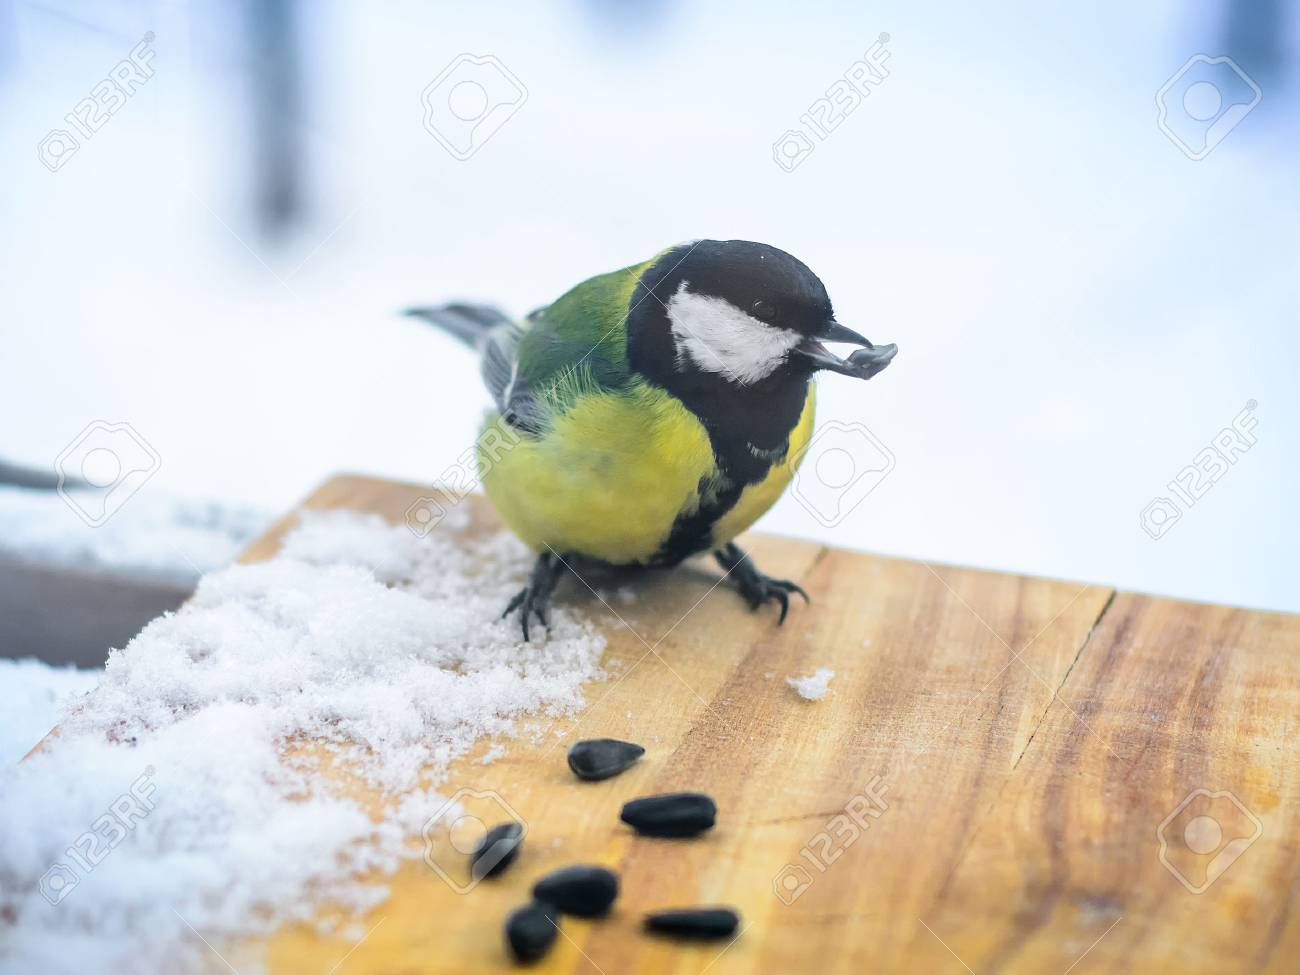 Chickadee eats sunflower seeds in the feeder in cold winter - 68708227